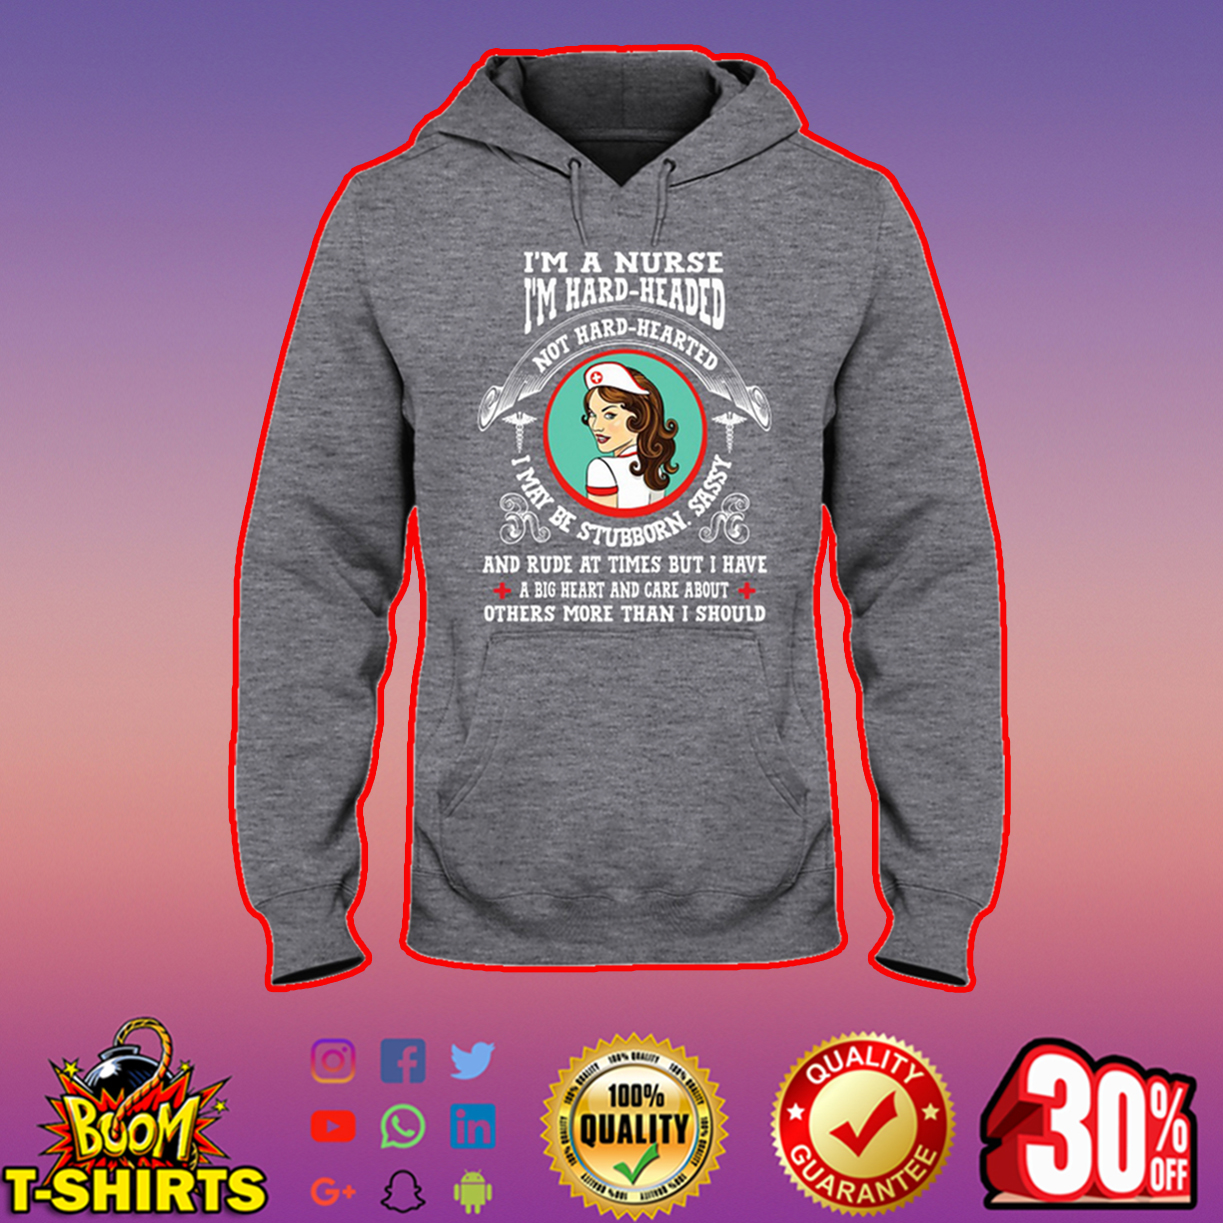 I'm a nurse I'm hard header not hard hearted hooded sweatshirt